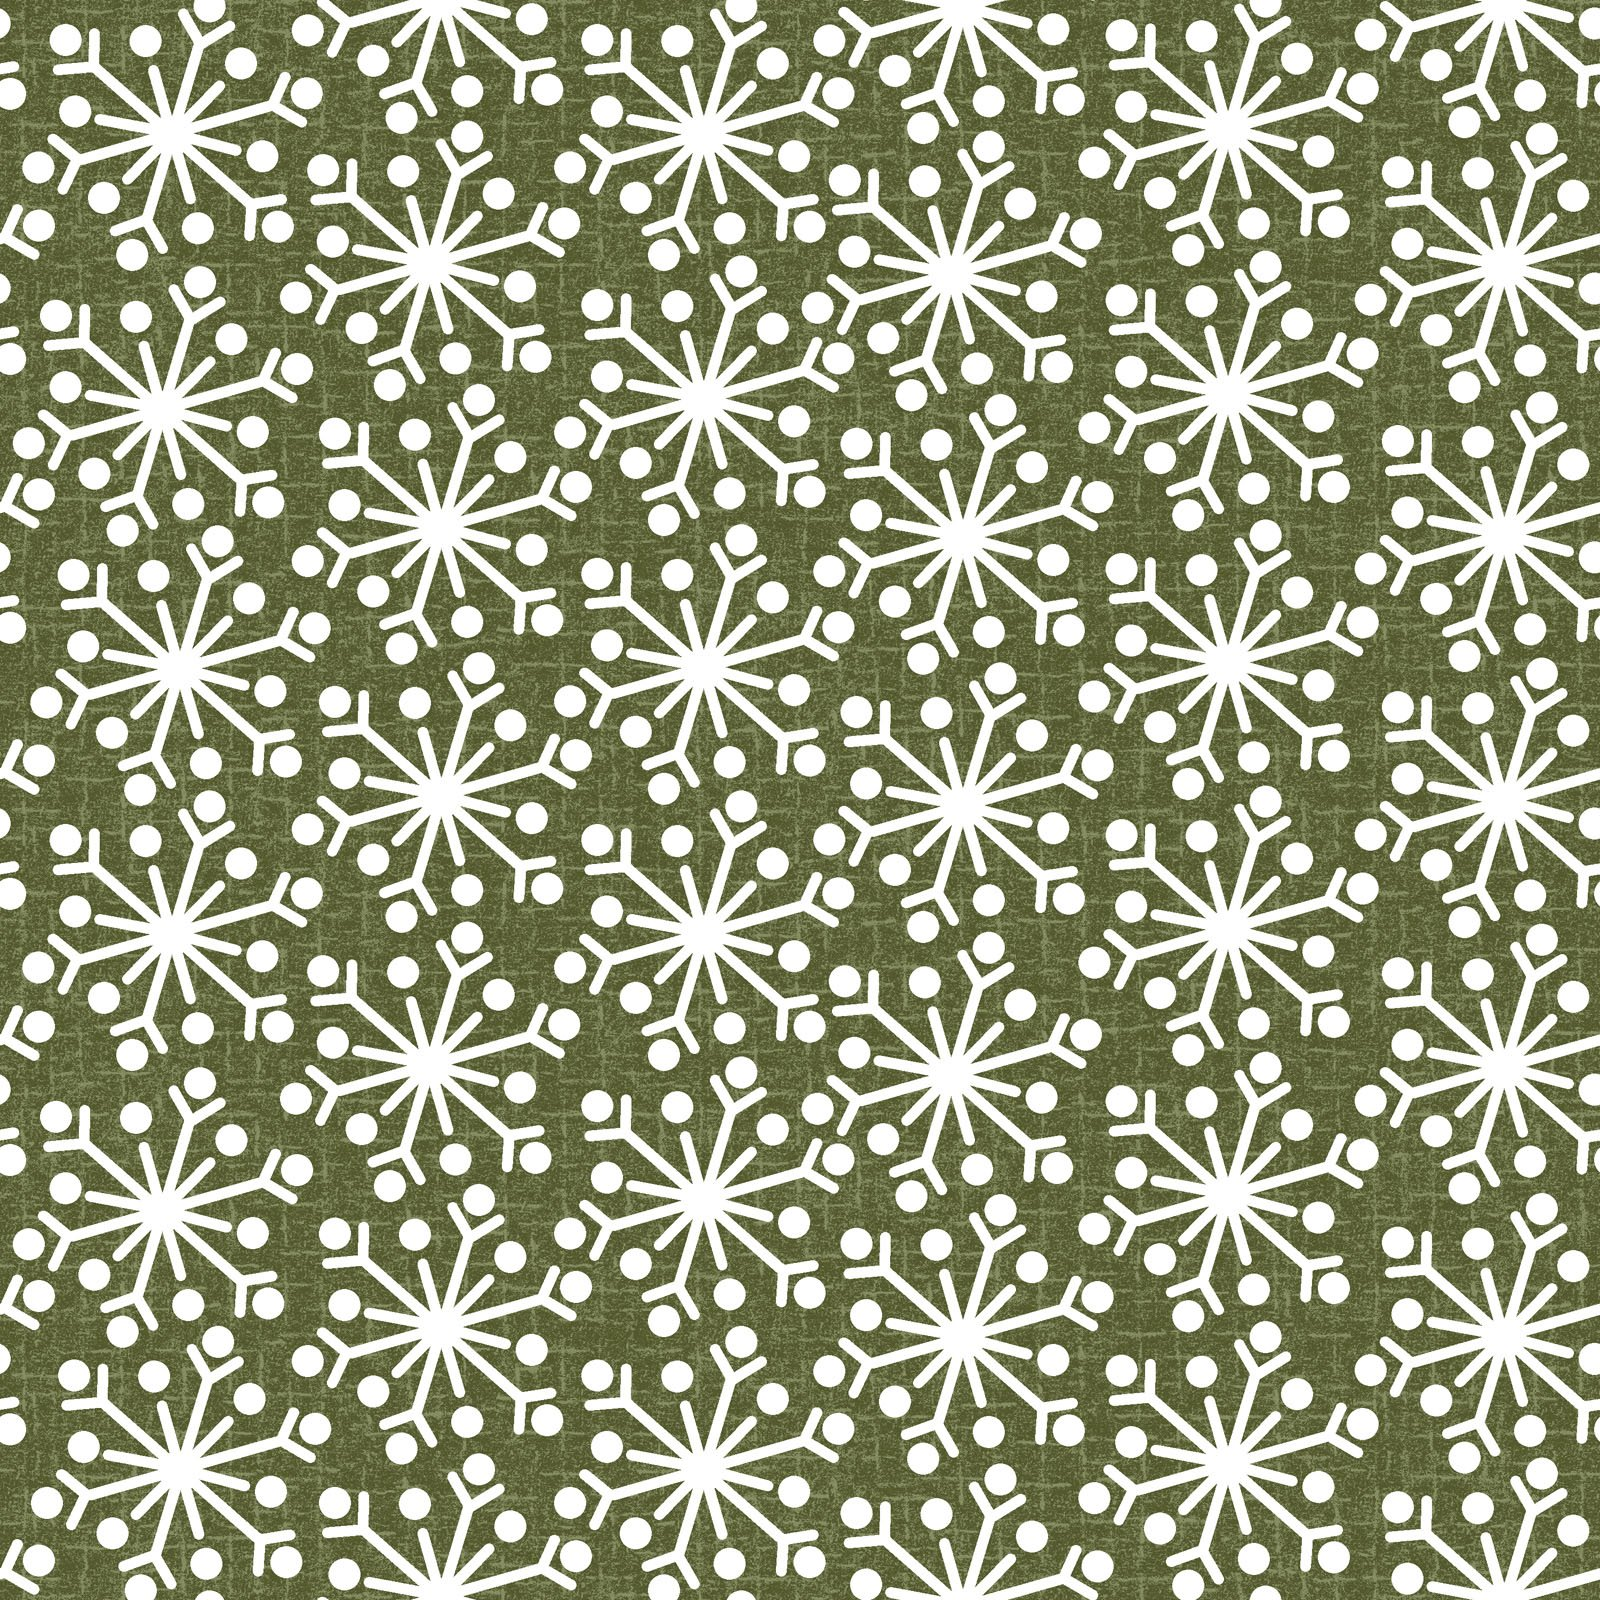 EESC-F9938 G - SNOWDAYS FLANNEL BY BONNIE SULLIVAN SNOWFLAKE GREEN - ARRIVING IN JULY 2021